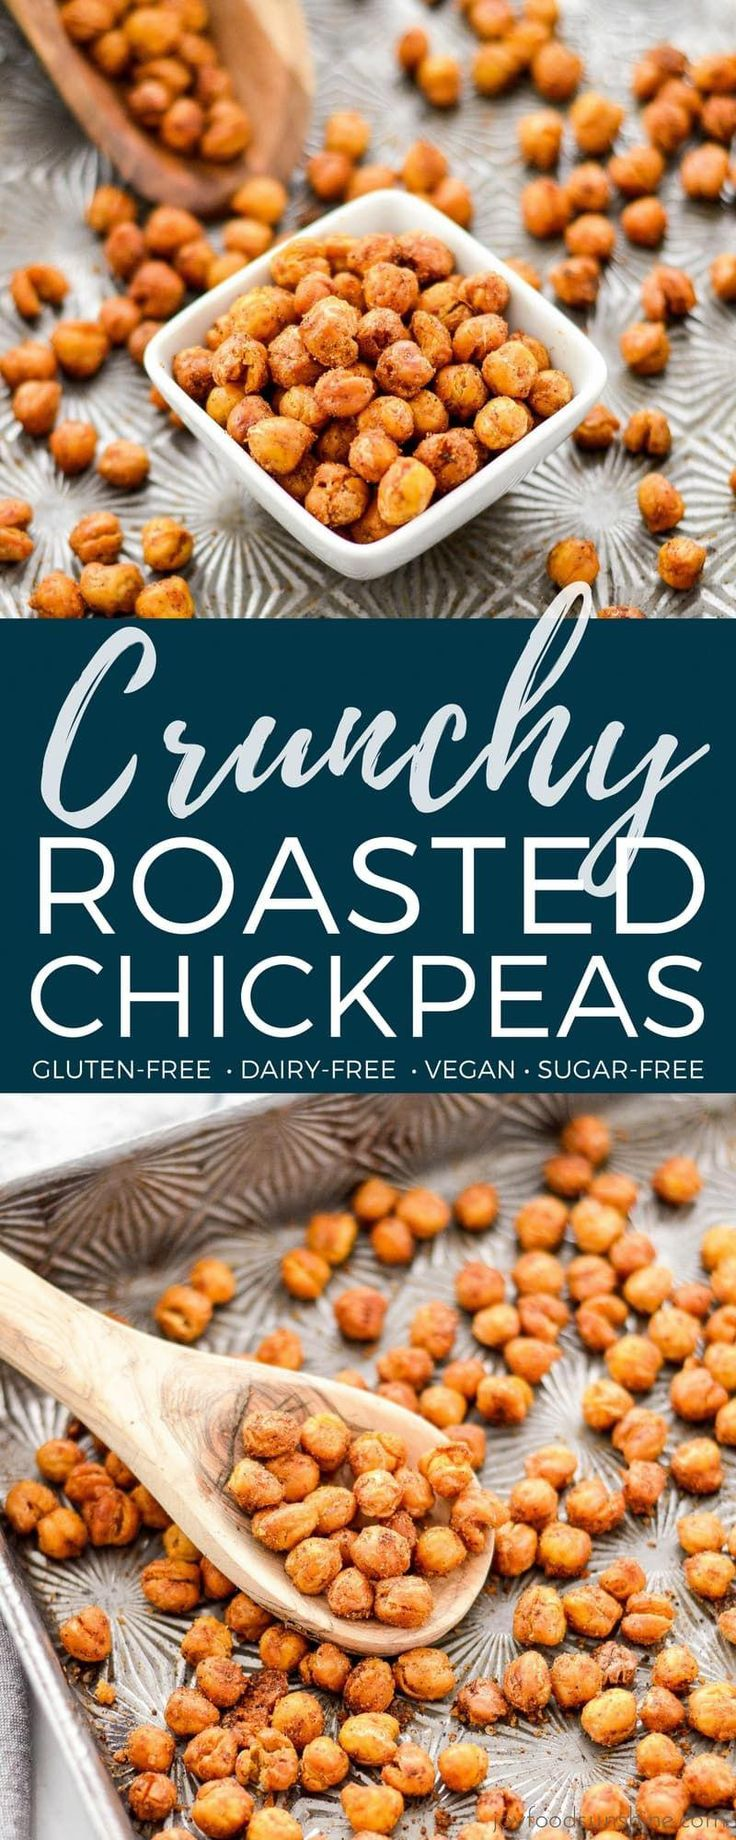 These perfectly seasoned Crunchy Roasted Chickpeas make a great snack or salad topper! They're easy, flavorful & healthy! Vegan, gluten-free, dairy-free, & sugar-free! #chickpeas #recipe #crunchy #roasted #snack #glutenfree #dairyfree #sugarfree #vegan #crunchychickepeas #healthy #healthyrecipe #recipe #JuiceDetoxEasy